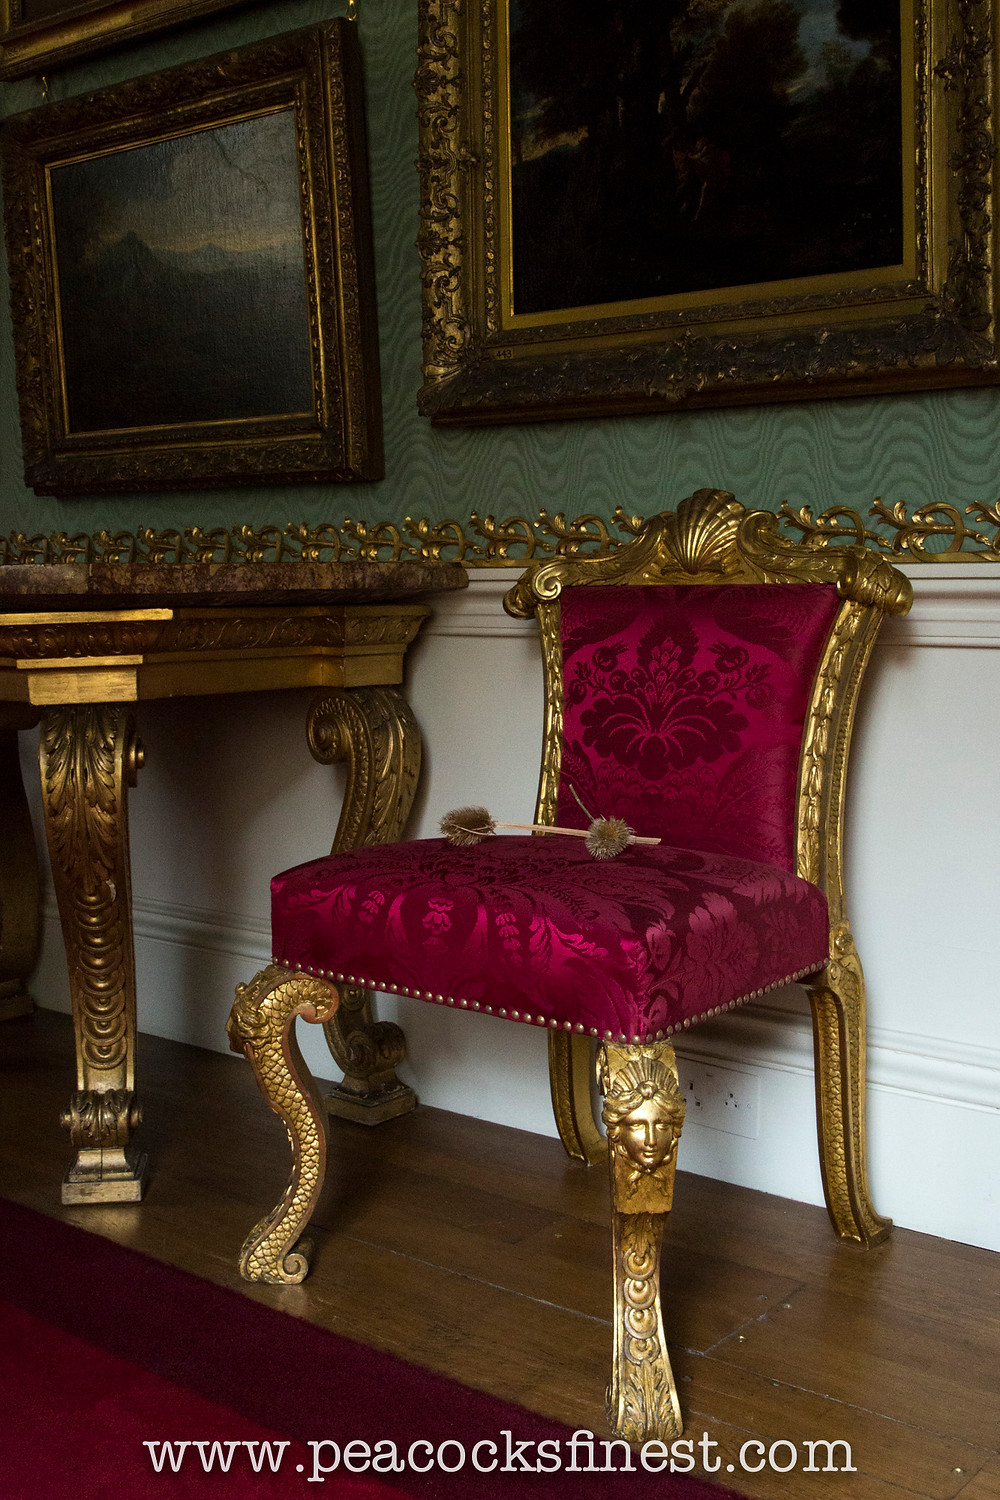 Chatsworth House, The Gallery. William Kent giltwood chair